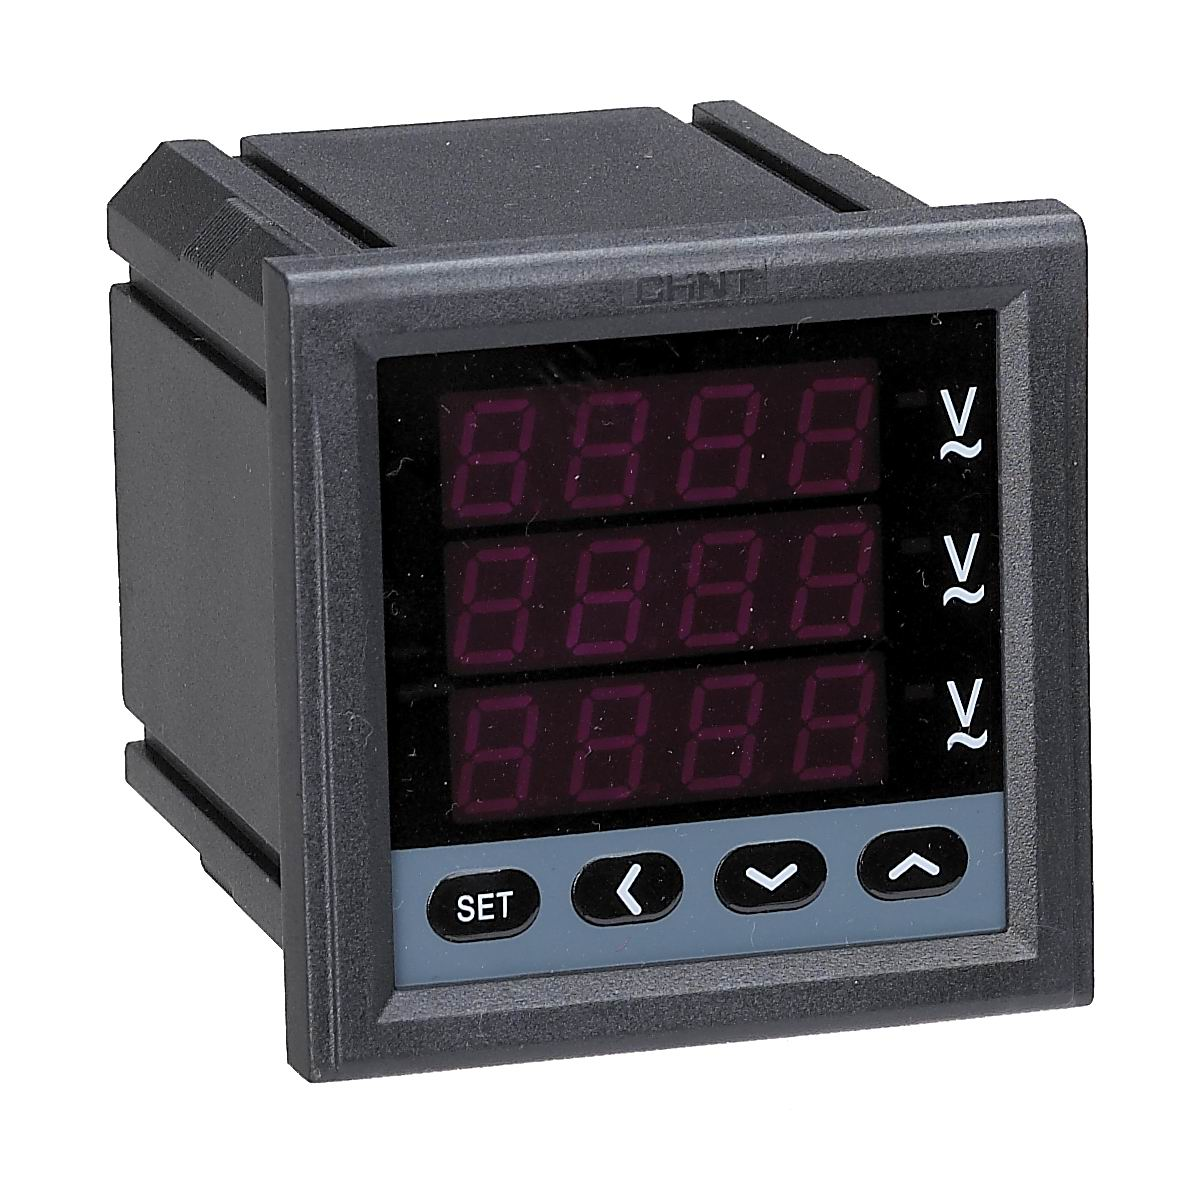 PZ7777-□S series three phase digital Voltmeter